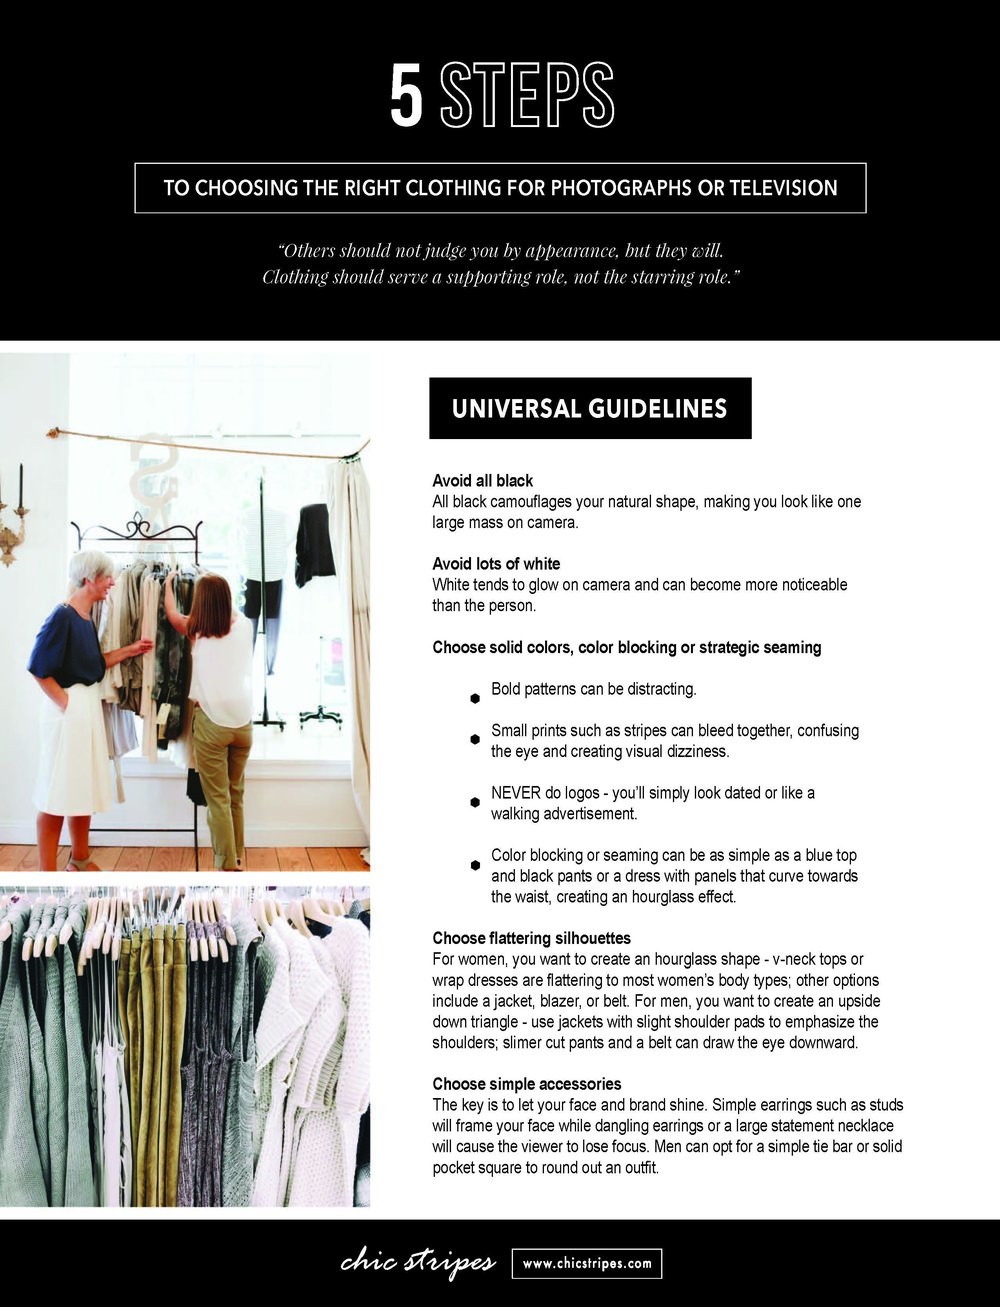 what to wear to look good in photographs